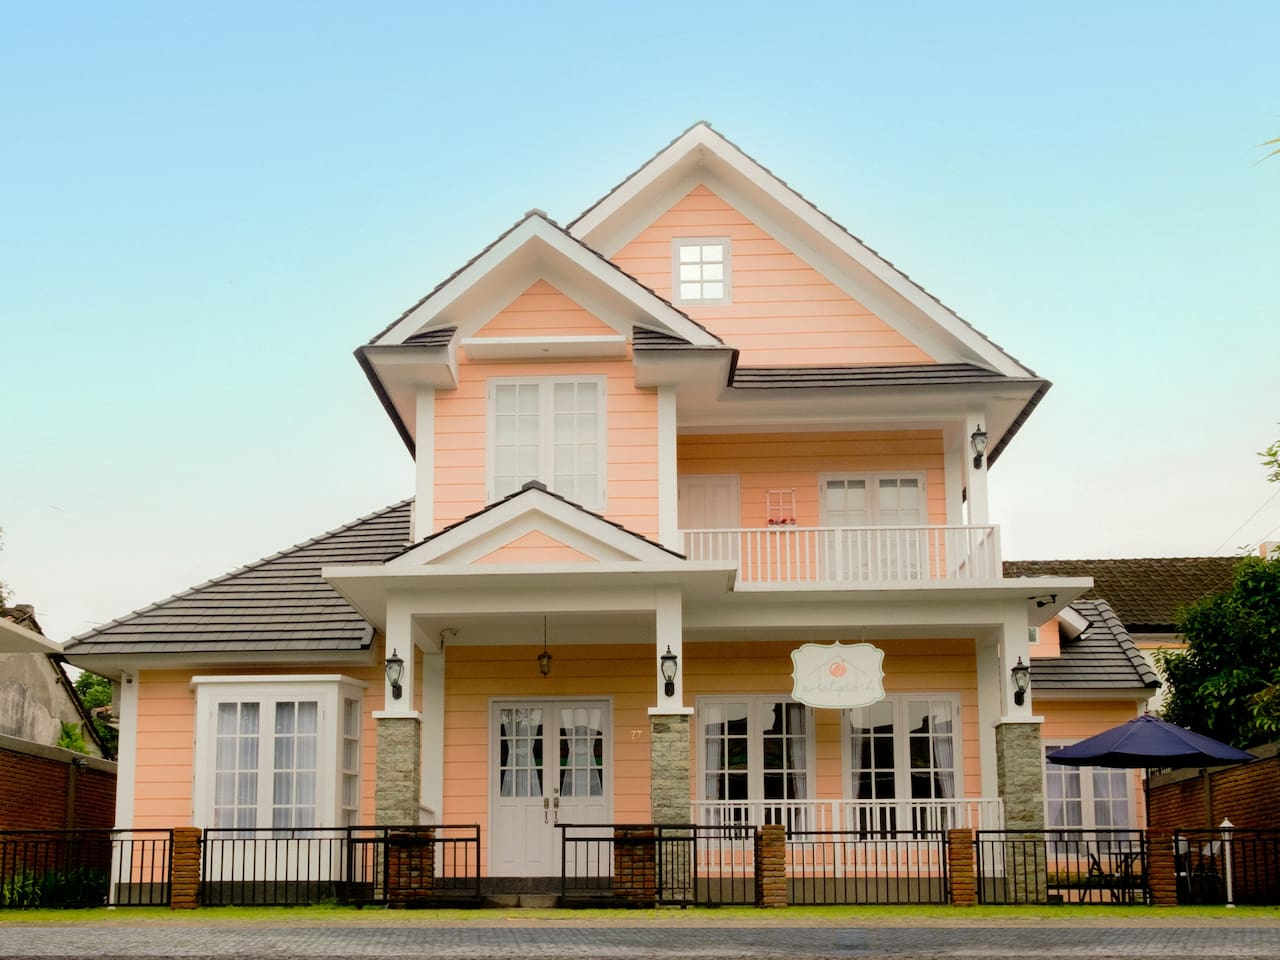 SWEET PEACH HOUSE. Front view of a Shabby Chic-American Style Twist Homestay. Located in Sandik, Batu Layar, 10 minutes driving from Senggigi or Mataram. Sweet Peach House has peach as dominant color